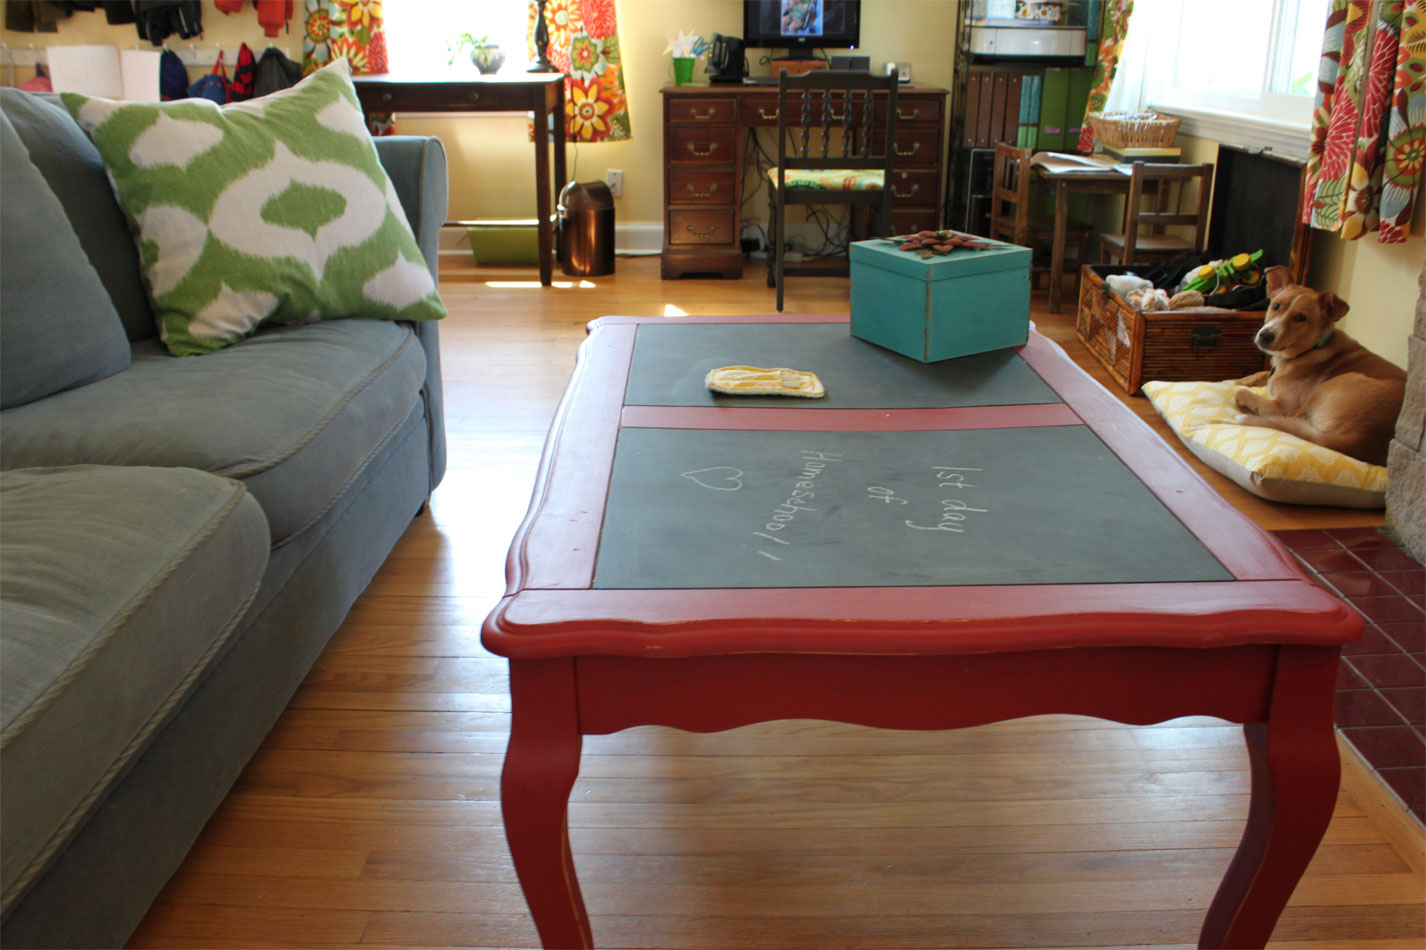 A Chalkboard Coffee Table Theres No Place Like Homemade - Chalkboard paint coffee table